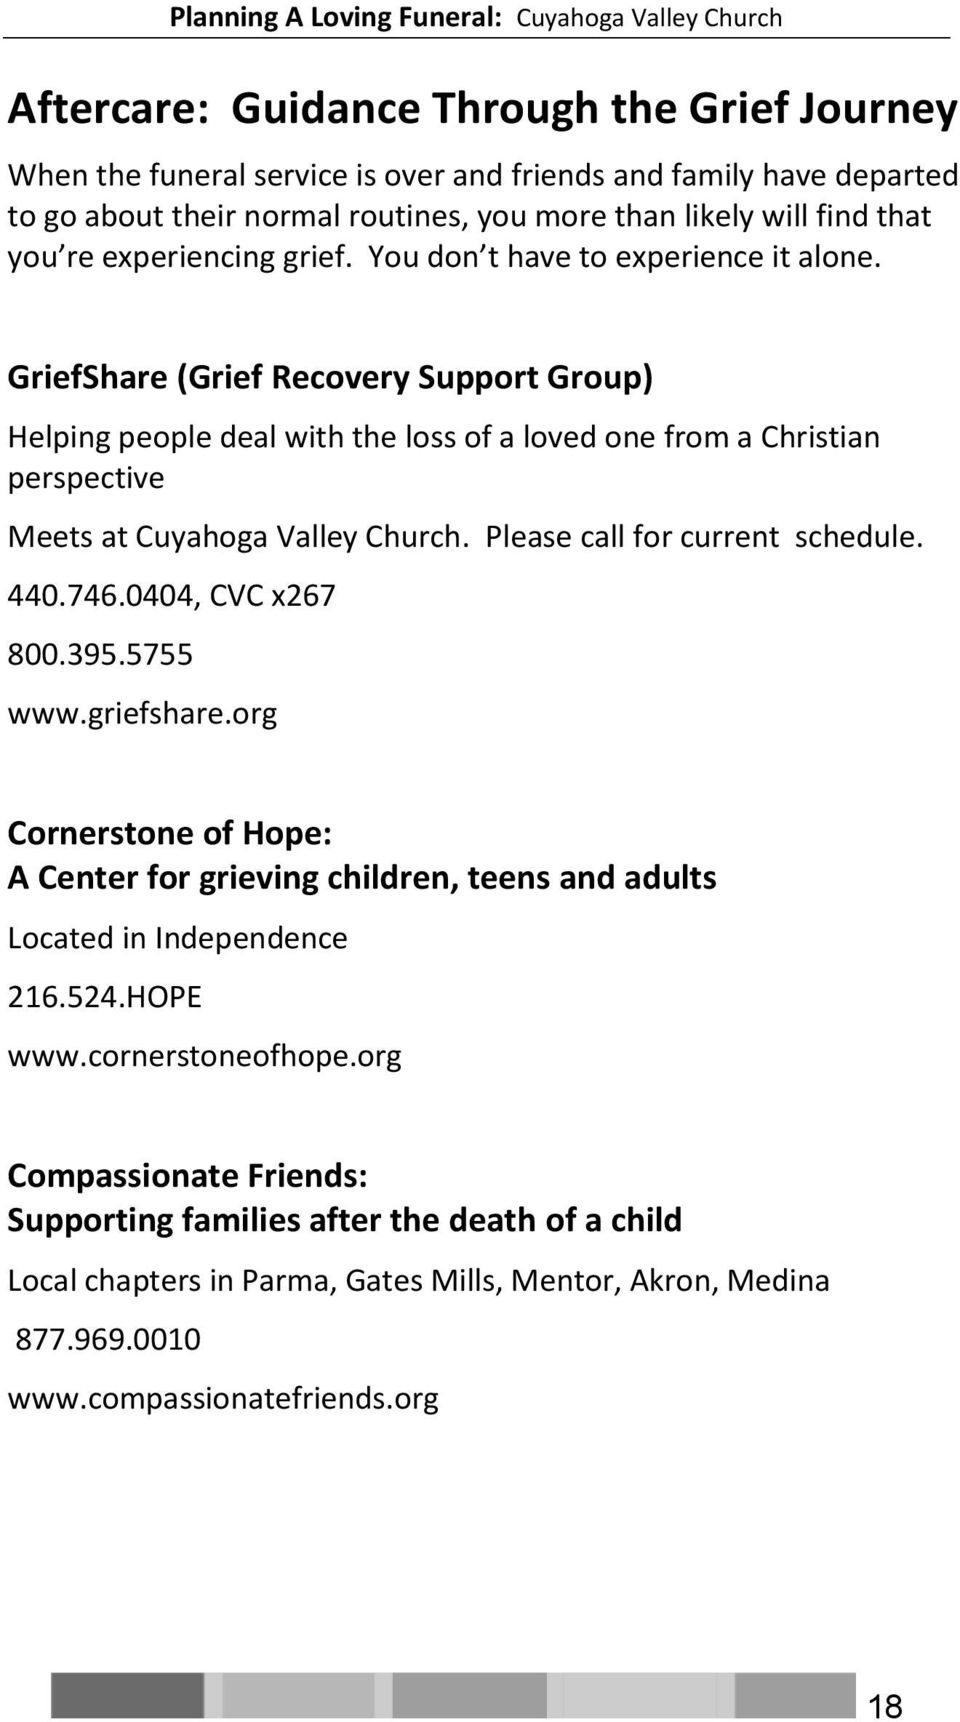 GriefShare (Grief Recovery Support Group) Helping people deal with the loss of a loved one from a Christian perspective Meets at Cuyahoga Valley Church. Please call for current schedule. 440.746.